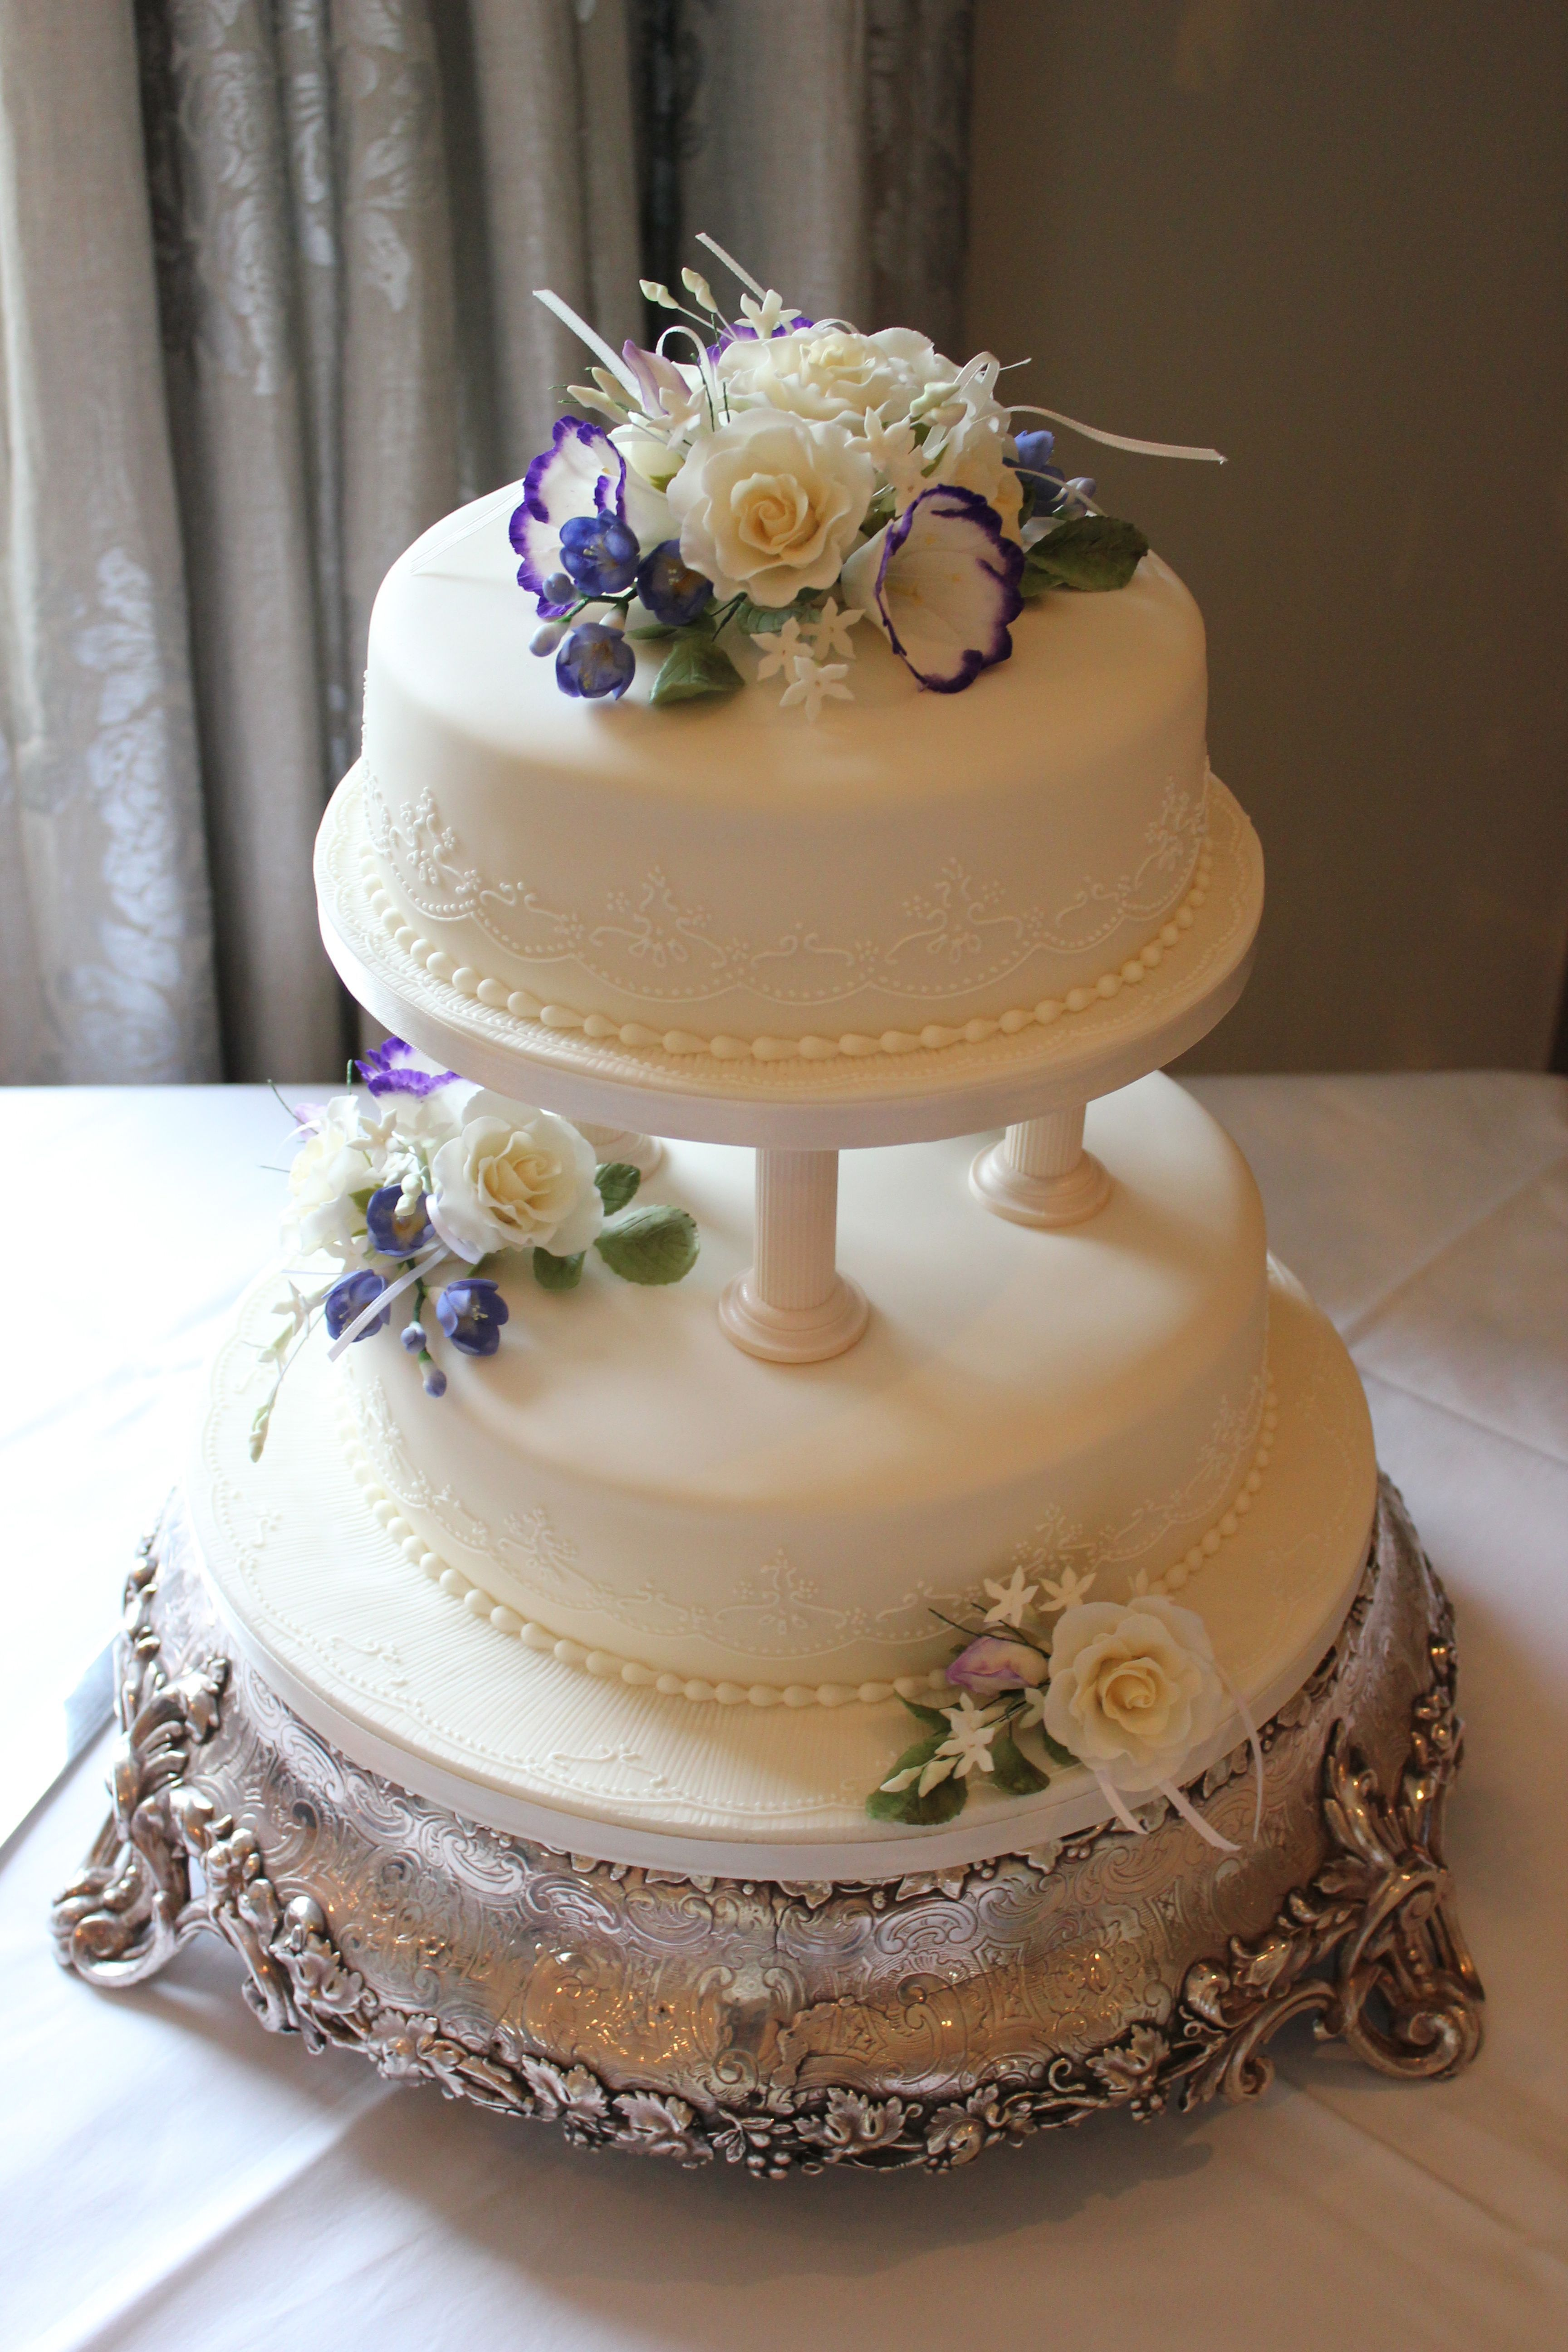 A Two Tier Cake With Pillars And Icing Flowers To Create This